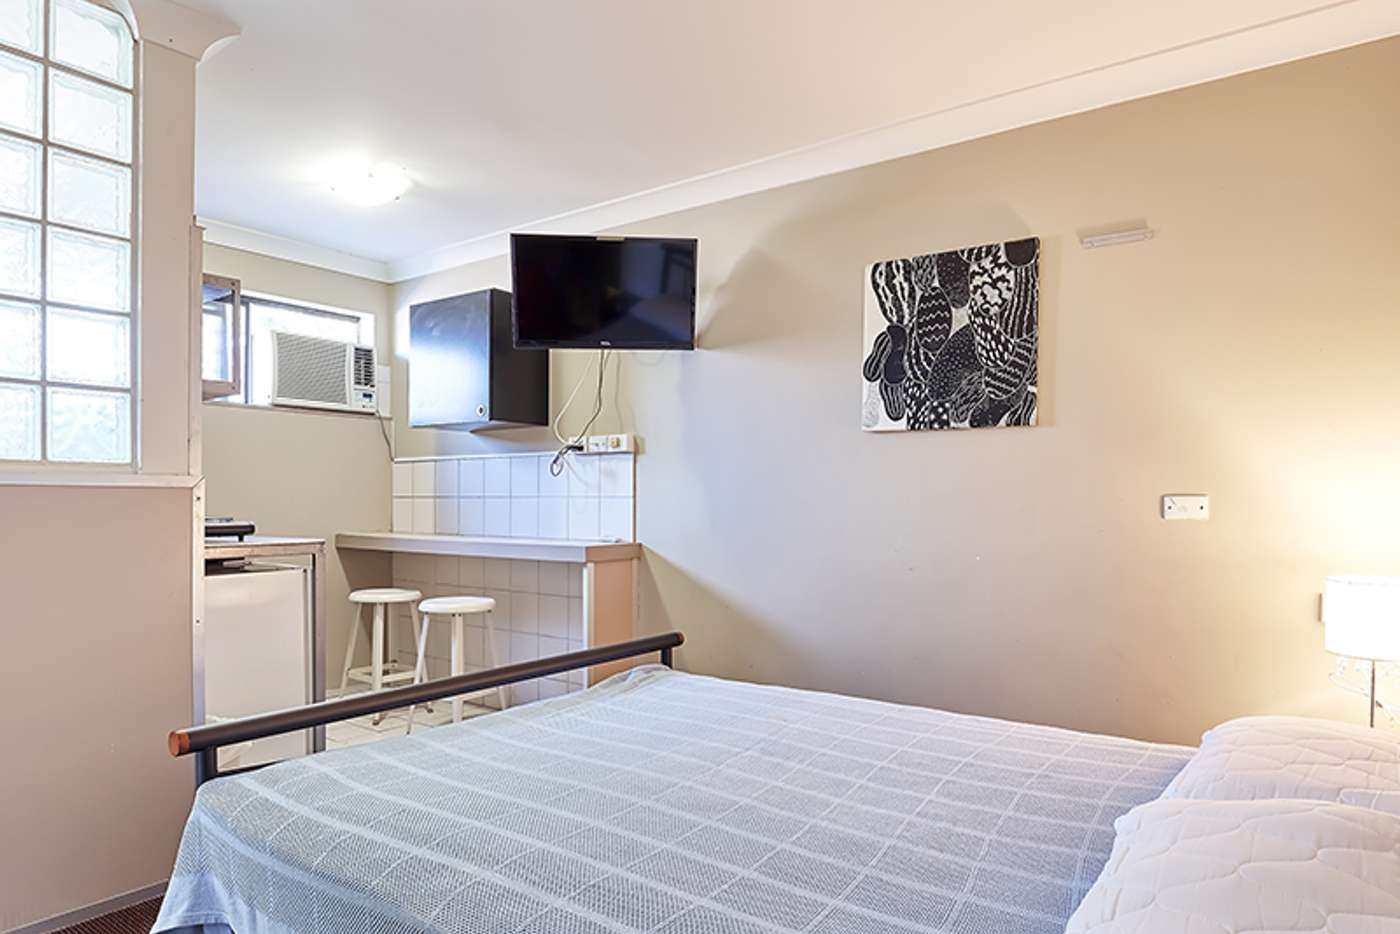 Main view of Homely unit listing, 207/204 Ipswich Road, Woolloongabba QLD 4102